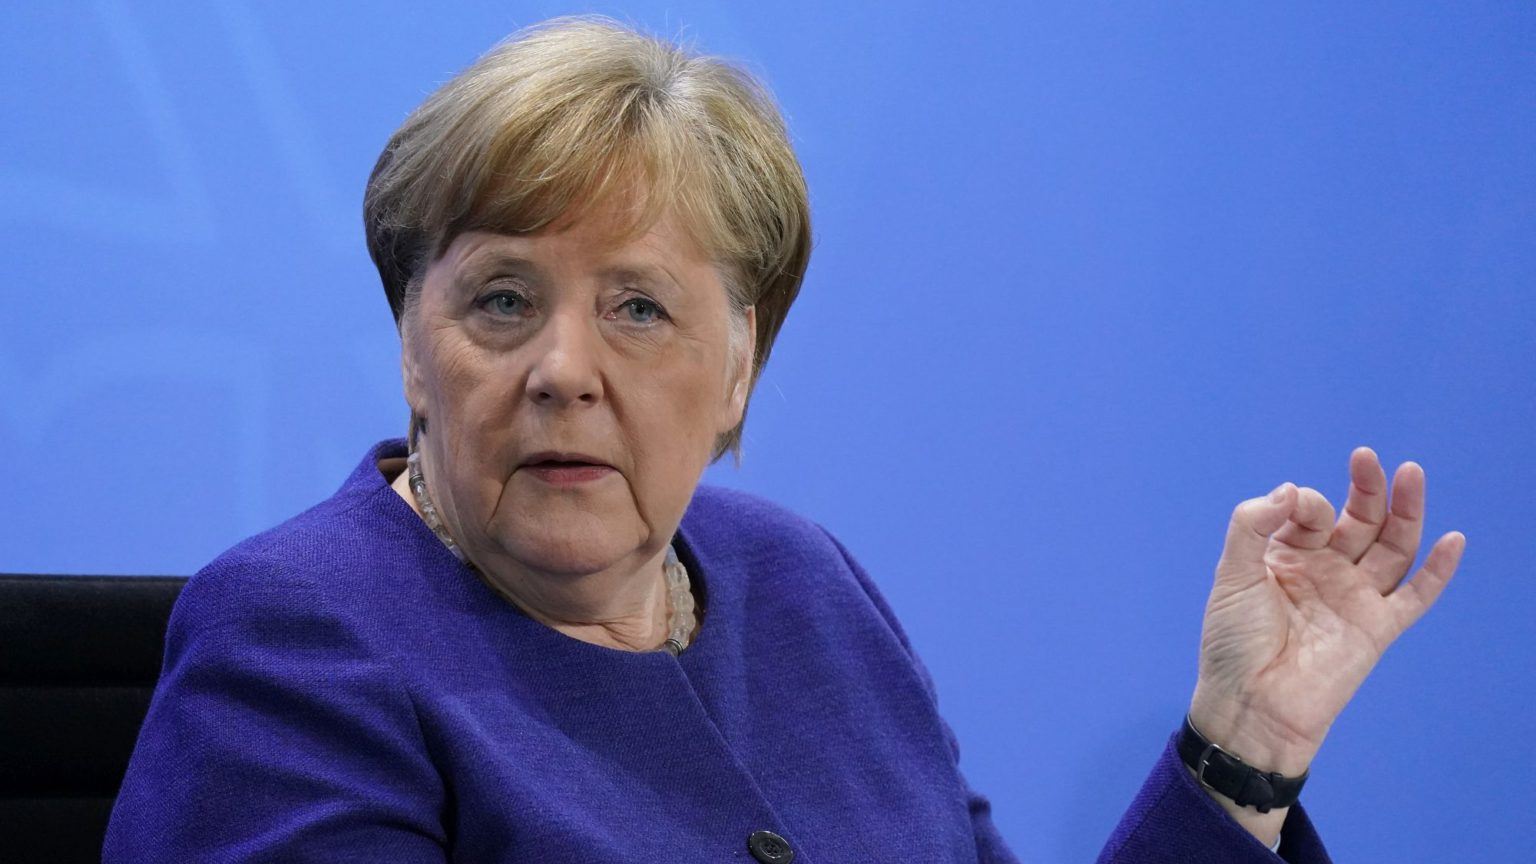 When will Germany face up to its economic decline?